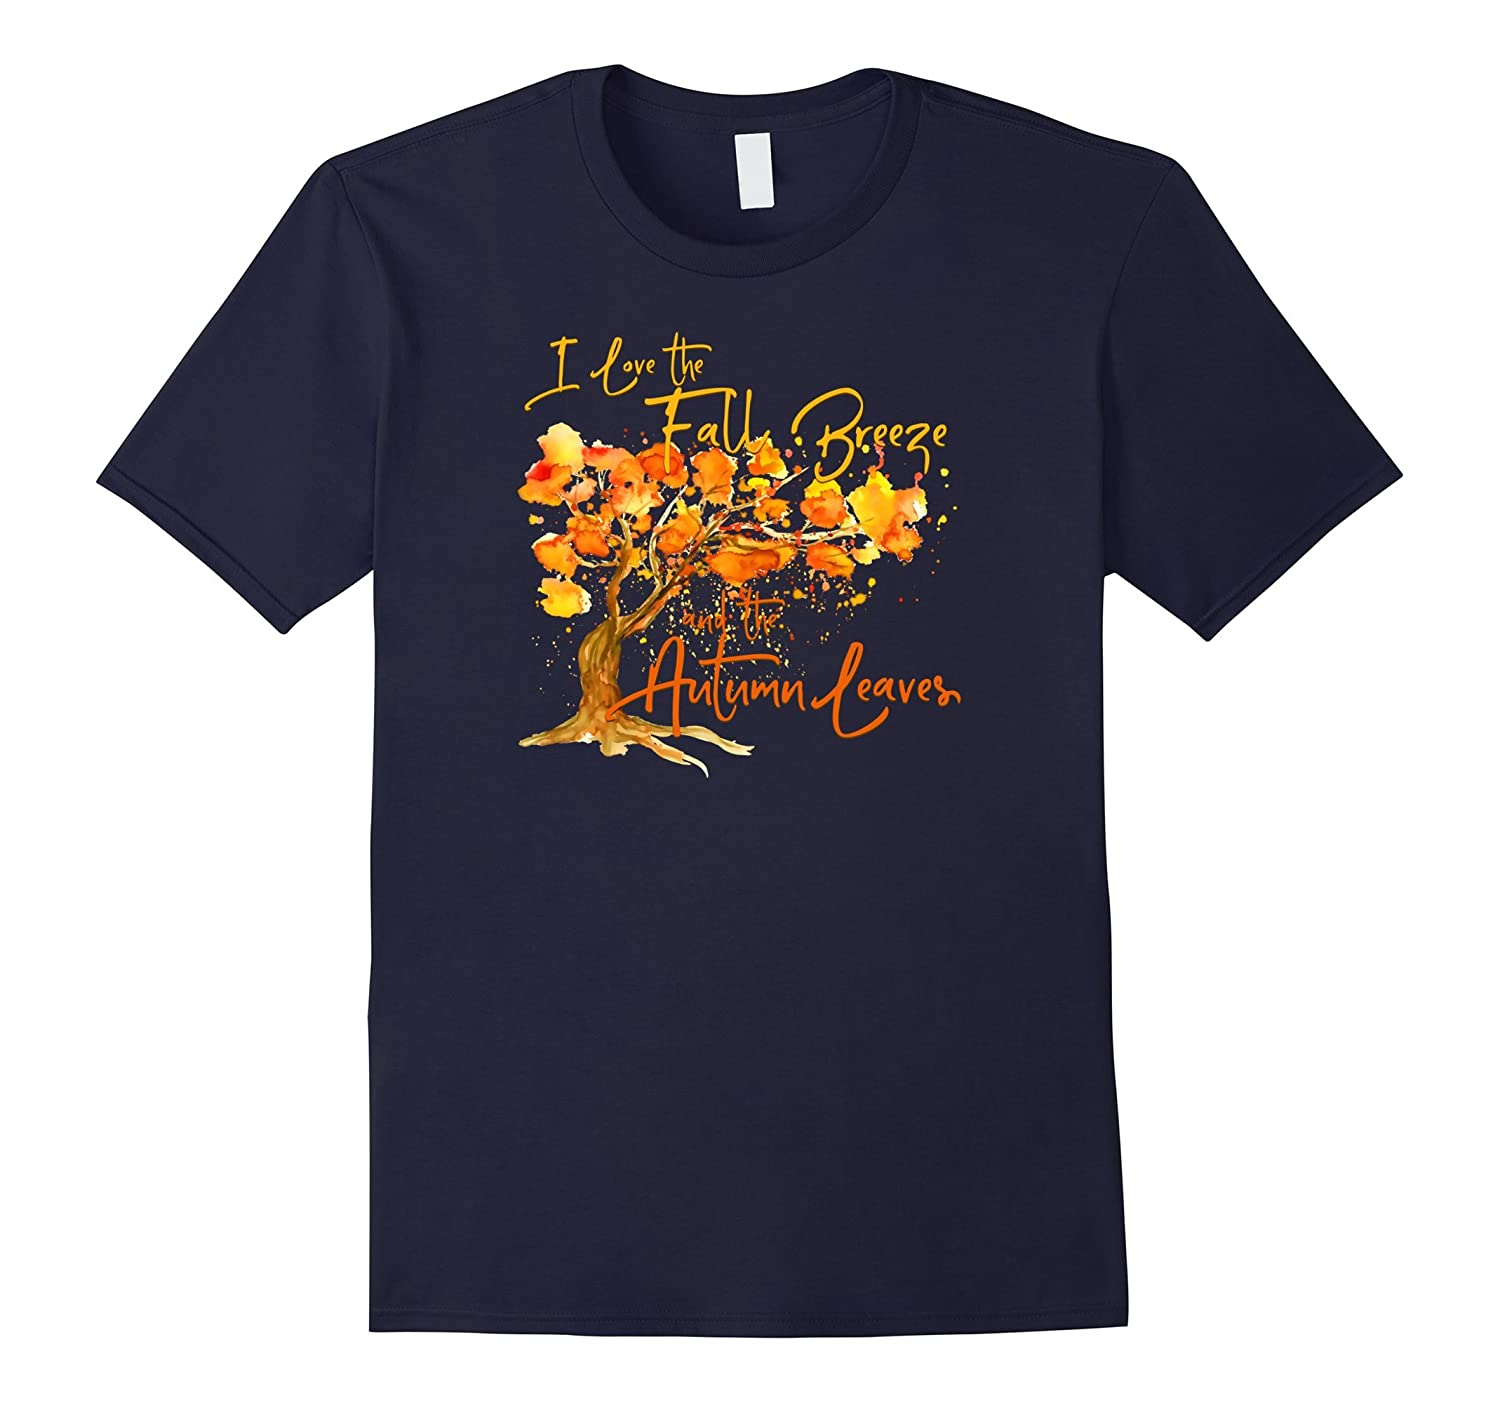 I Love the Fall Breeze and Autumn Leaves T-shirt-FL